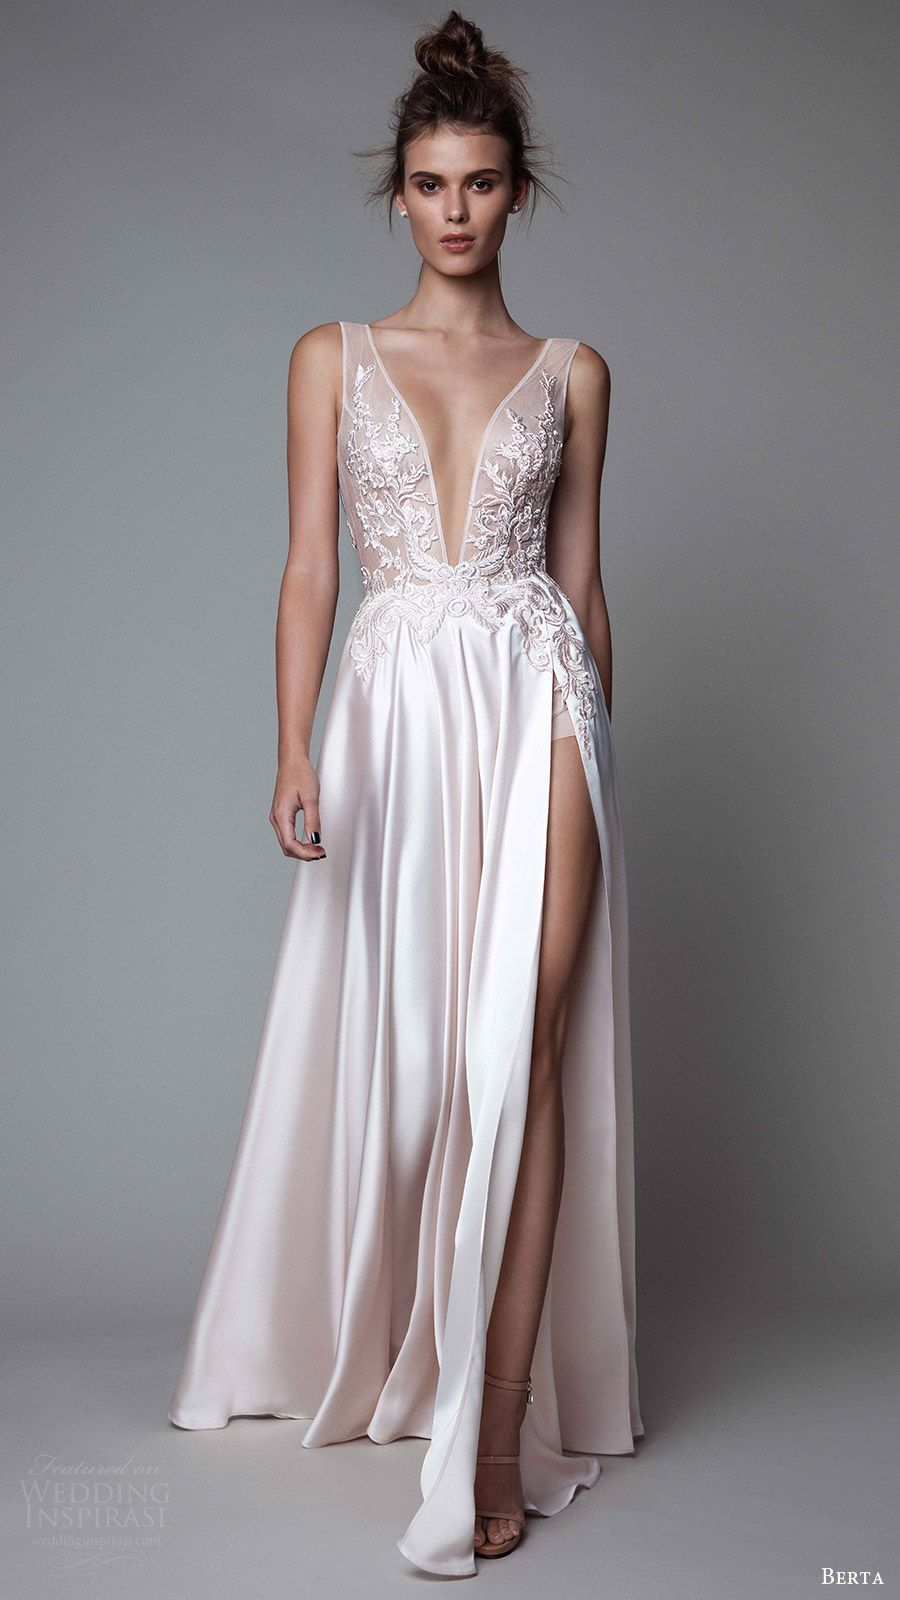 Berta Fall 2017 Ready-to-Wear Collection | Evening wedding dresses ...